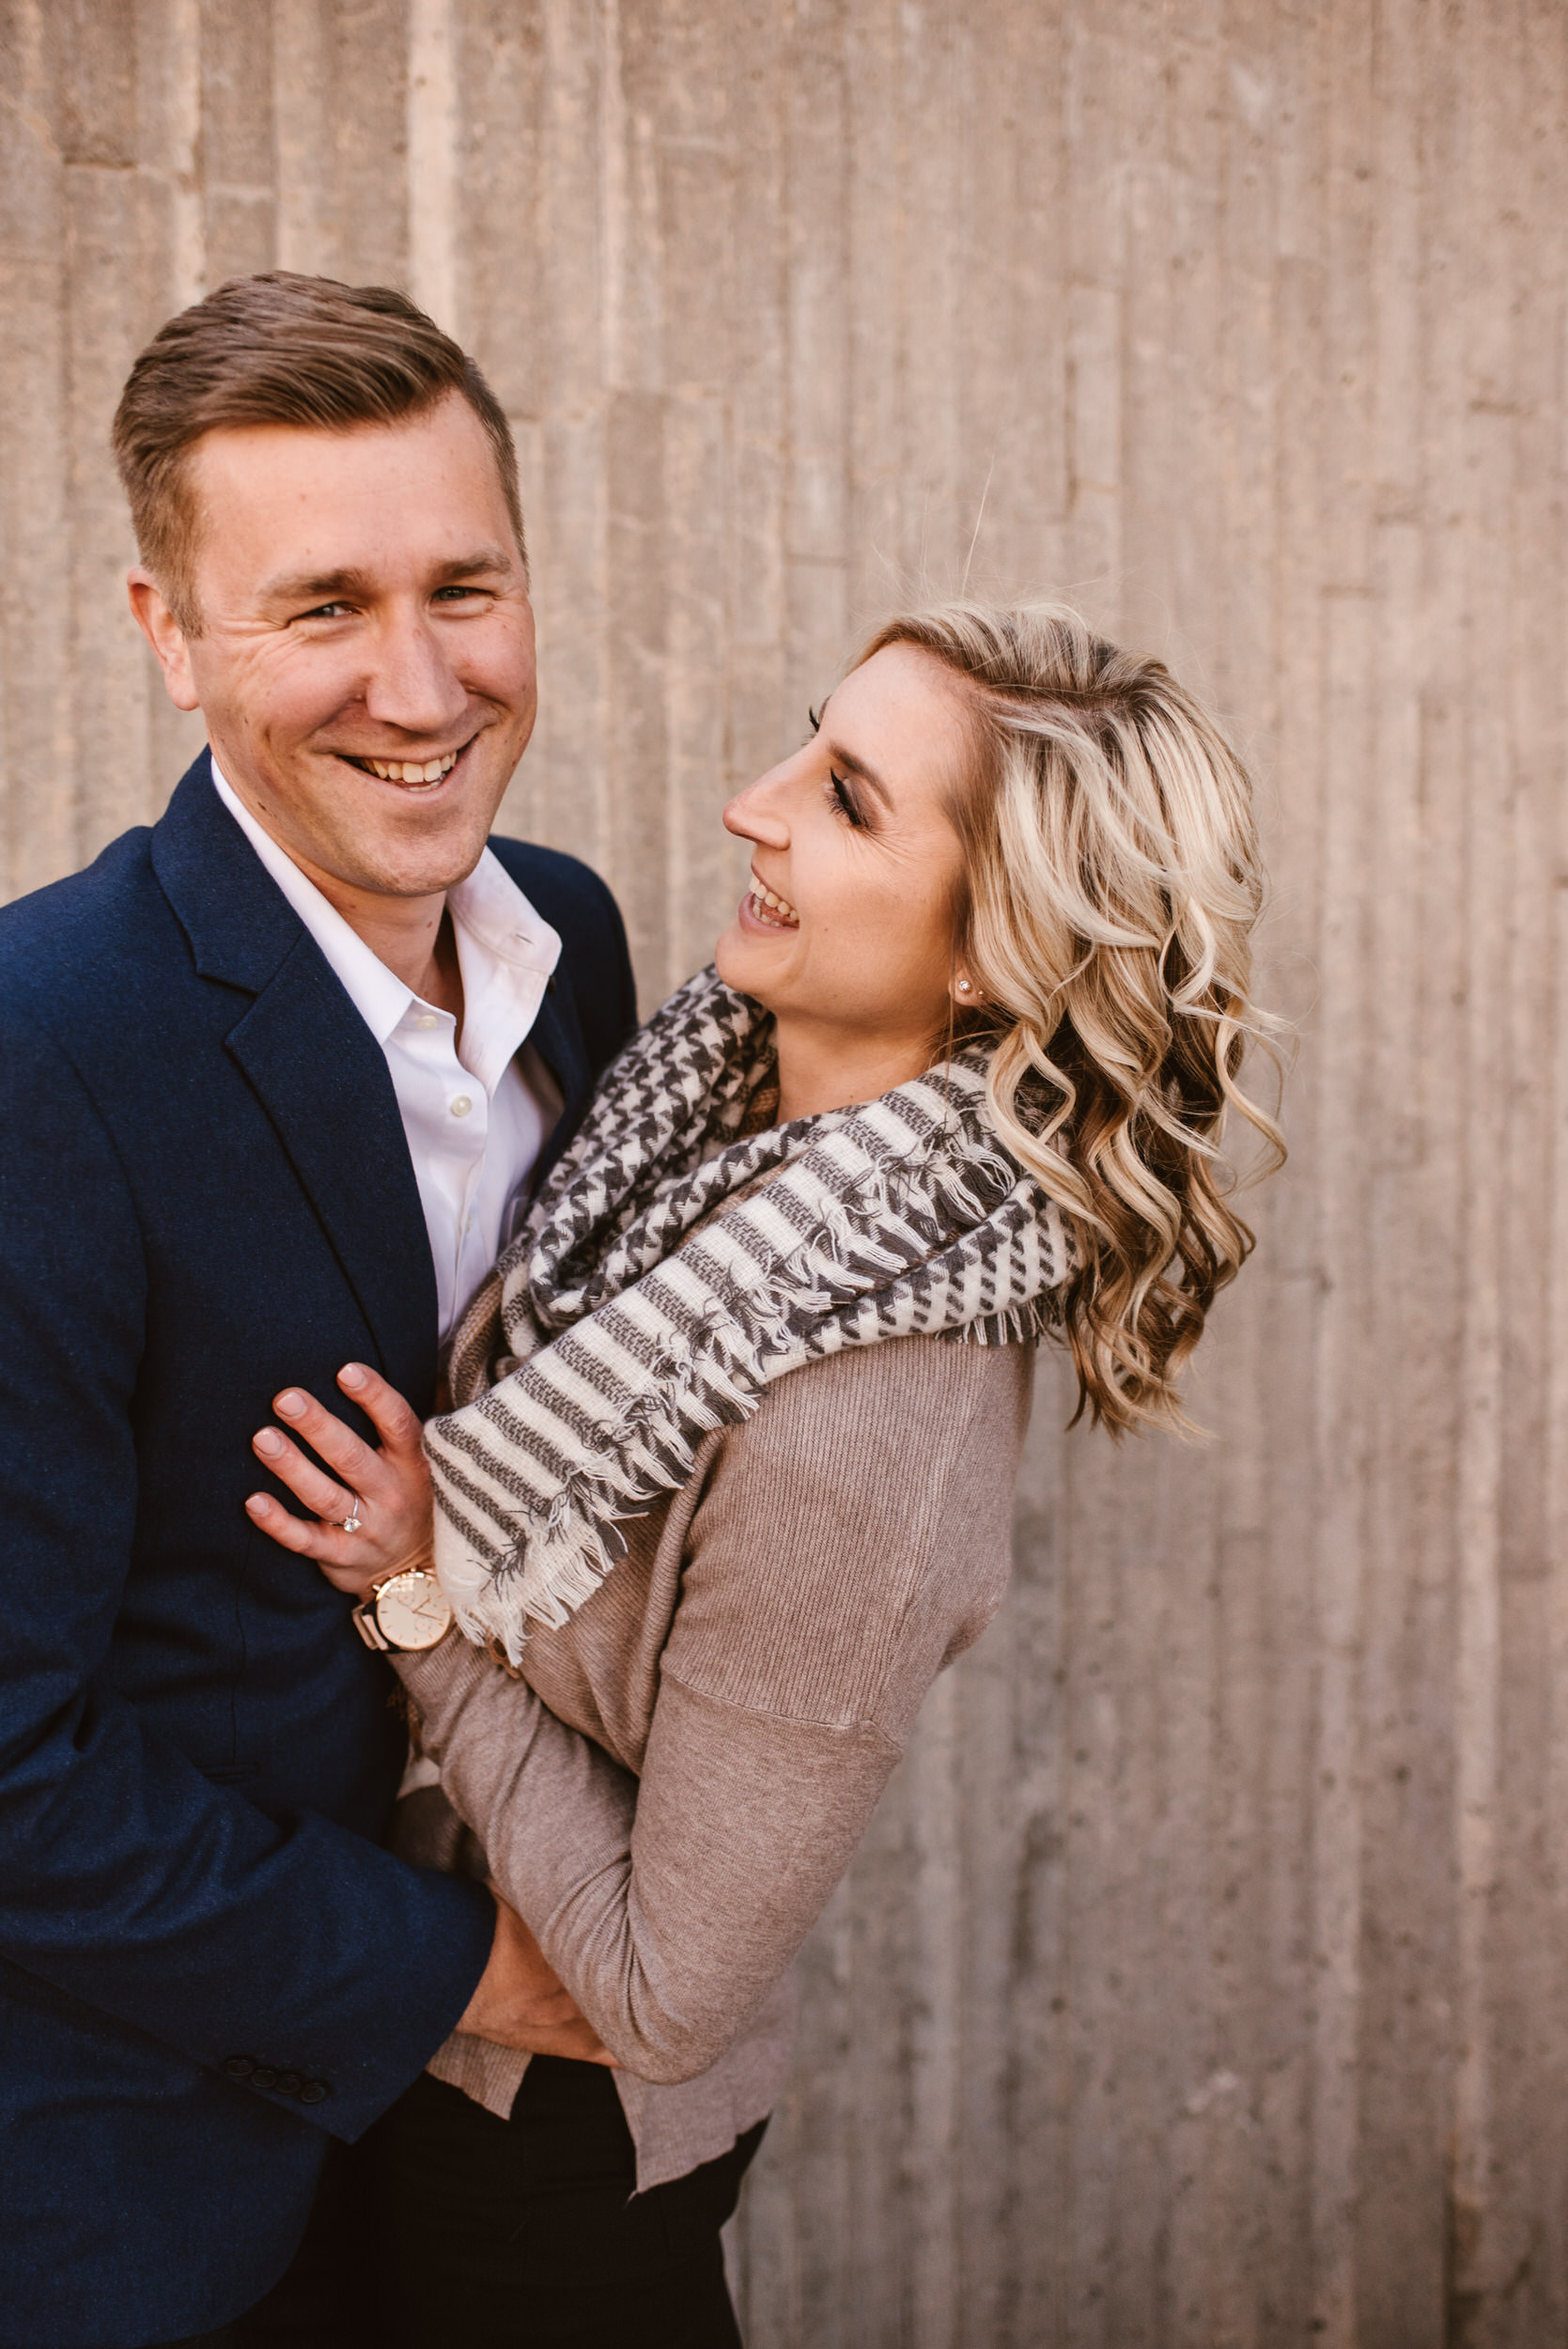 Gene Leahy Mall Omaha Engagement Session Kaylie Sirek Photography 14.jpg